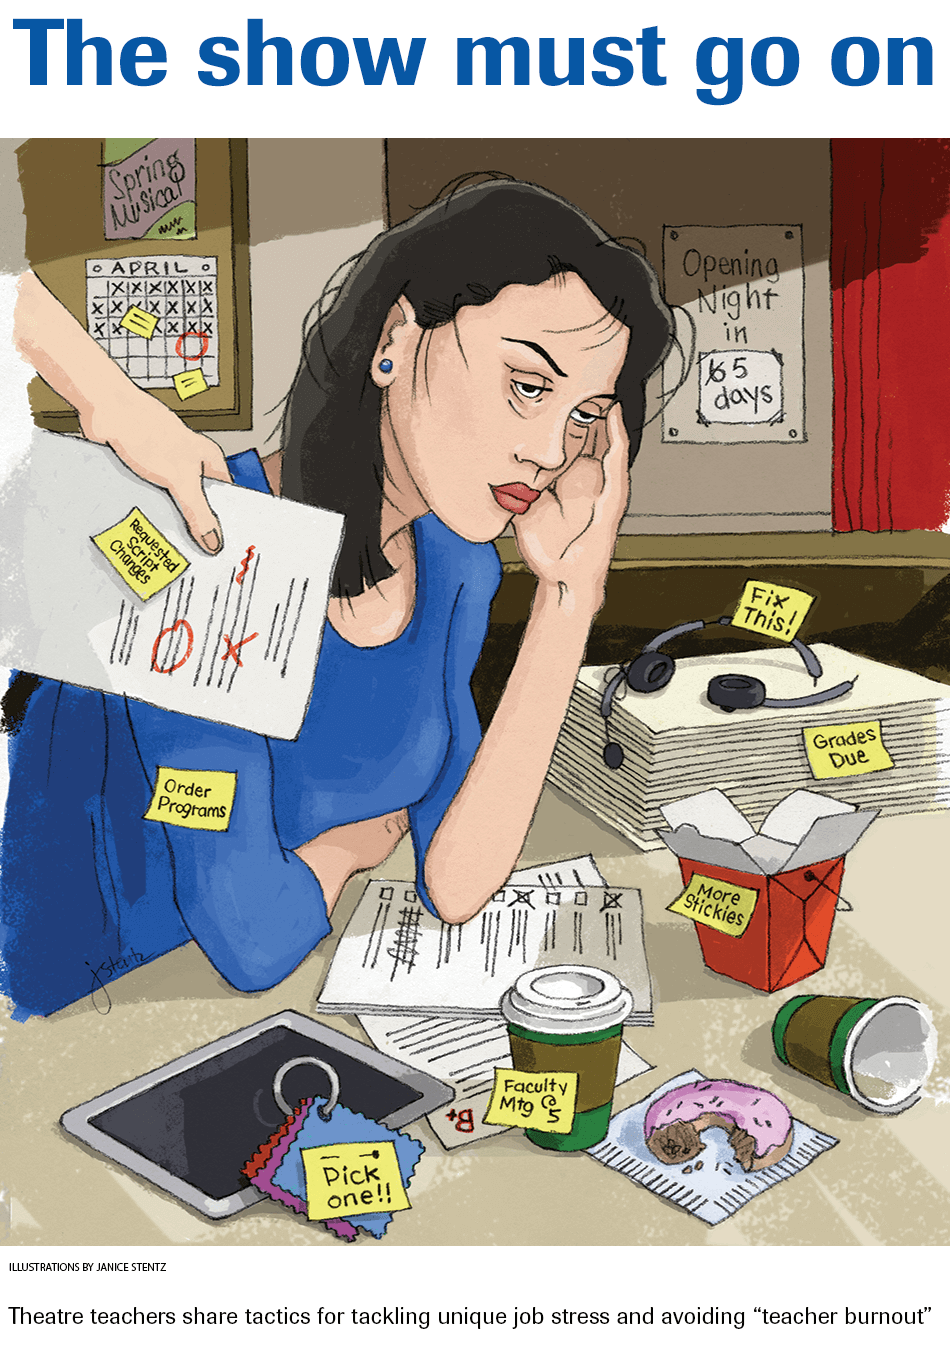 Hero image. The show must go on. Theatre teachers share tactics for tackling unique job stress and avoiding 'teacher burnout'. Illustrations by Janice Stentz.